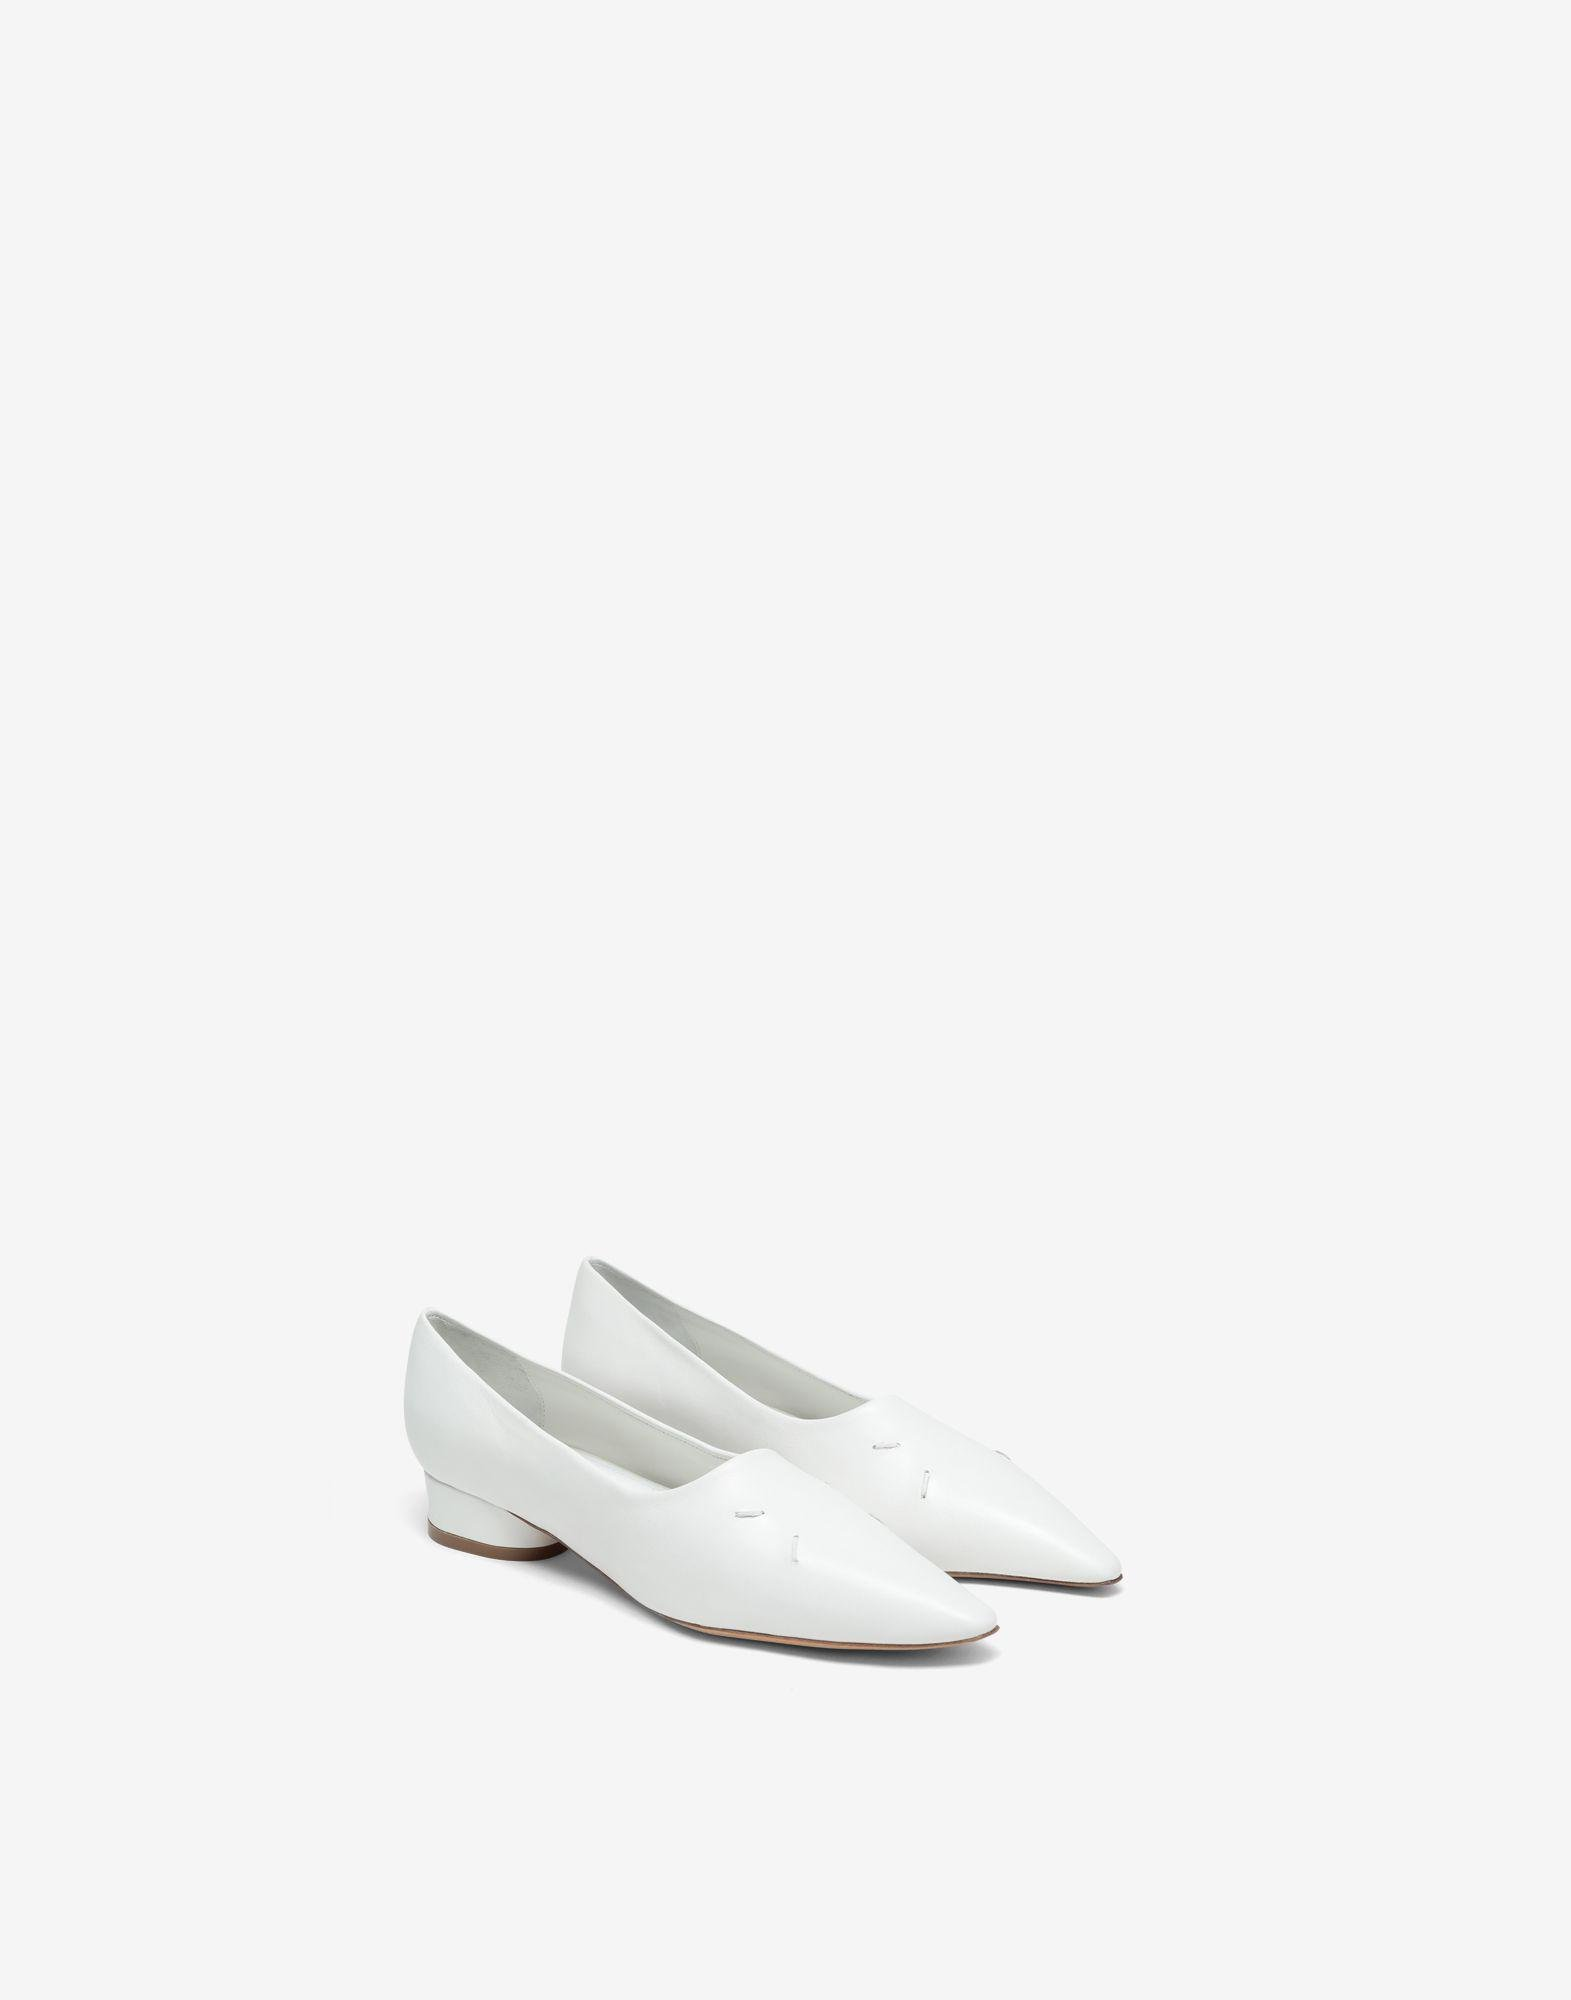 4-stitches loafers 1